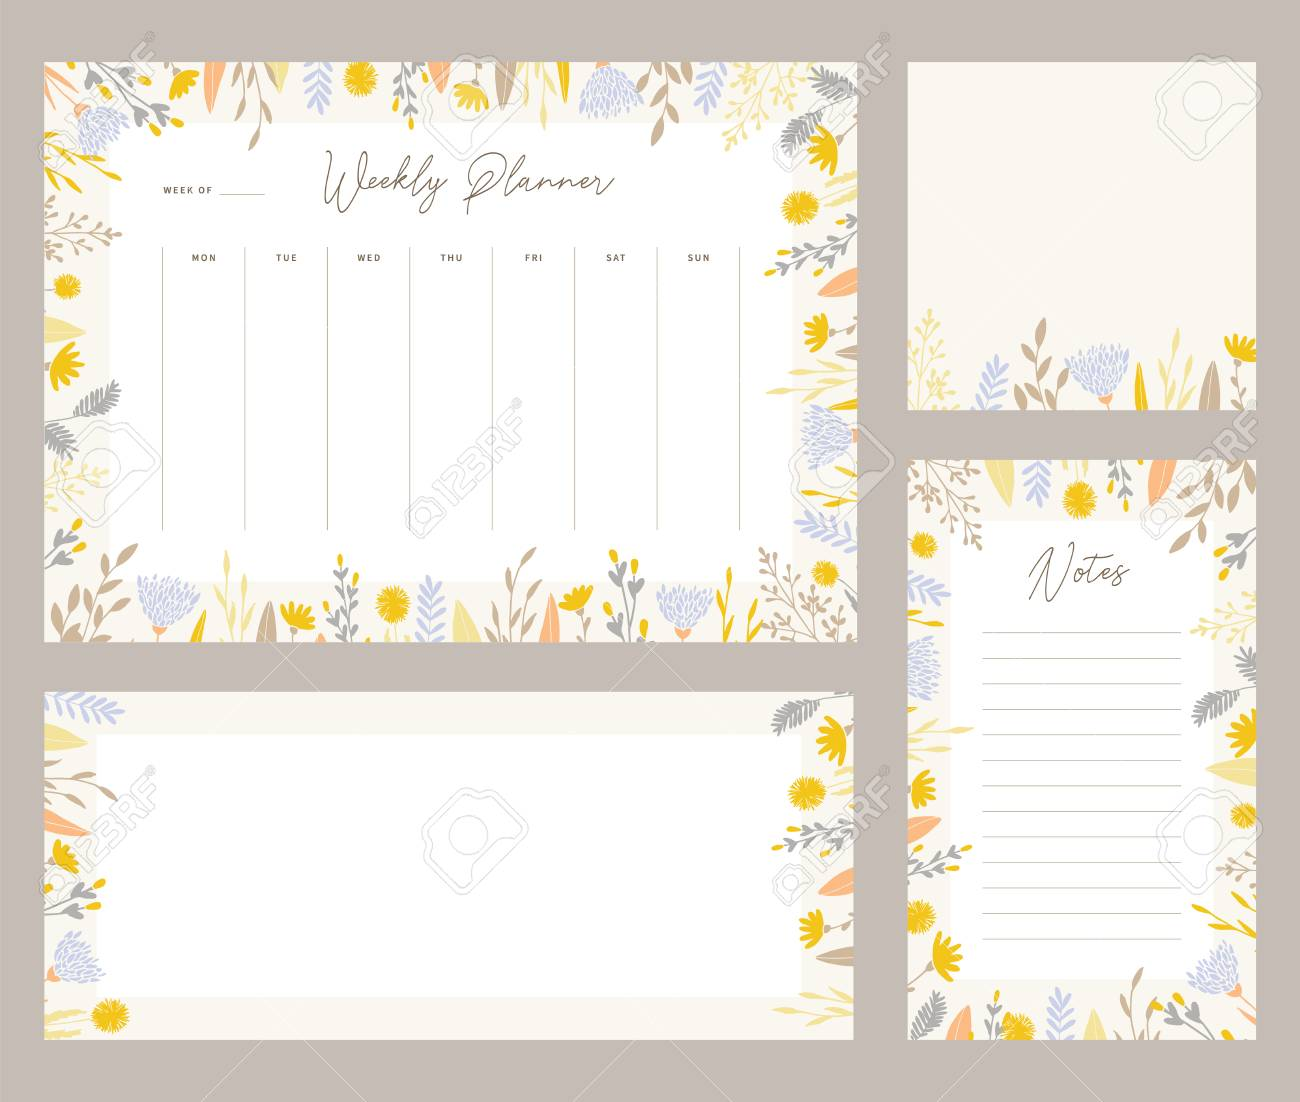 graphic relating to Weekly Planner Sheet called Lovely weekly planner templates with an sophisticated floral pastel tone..